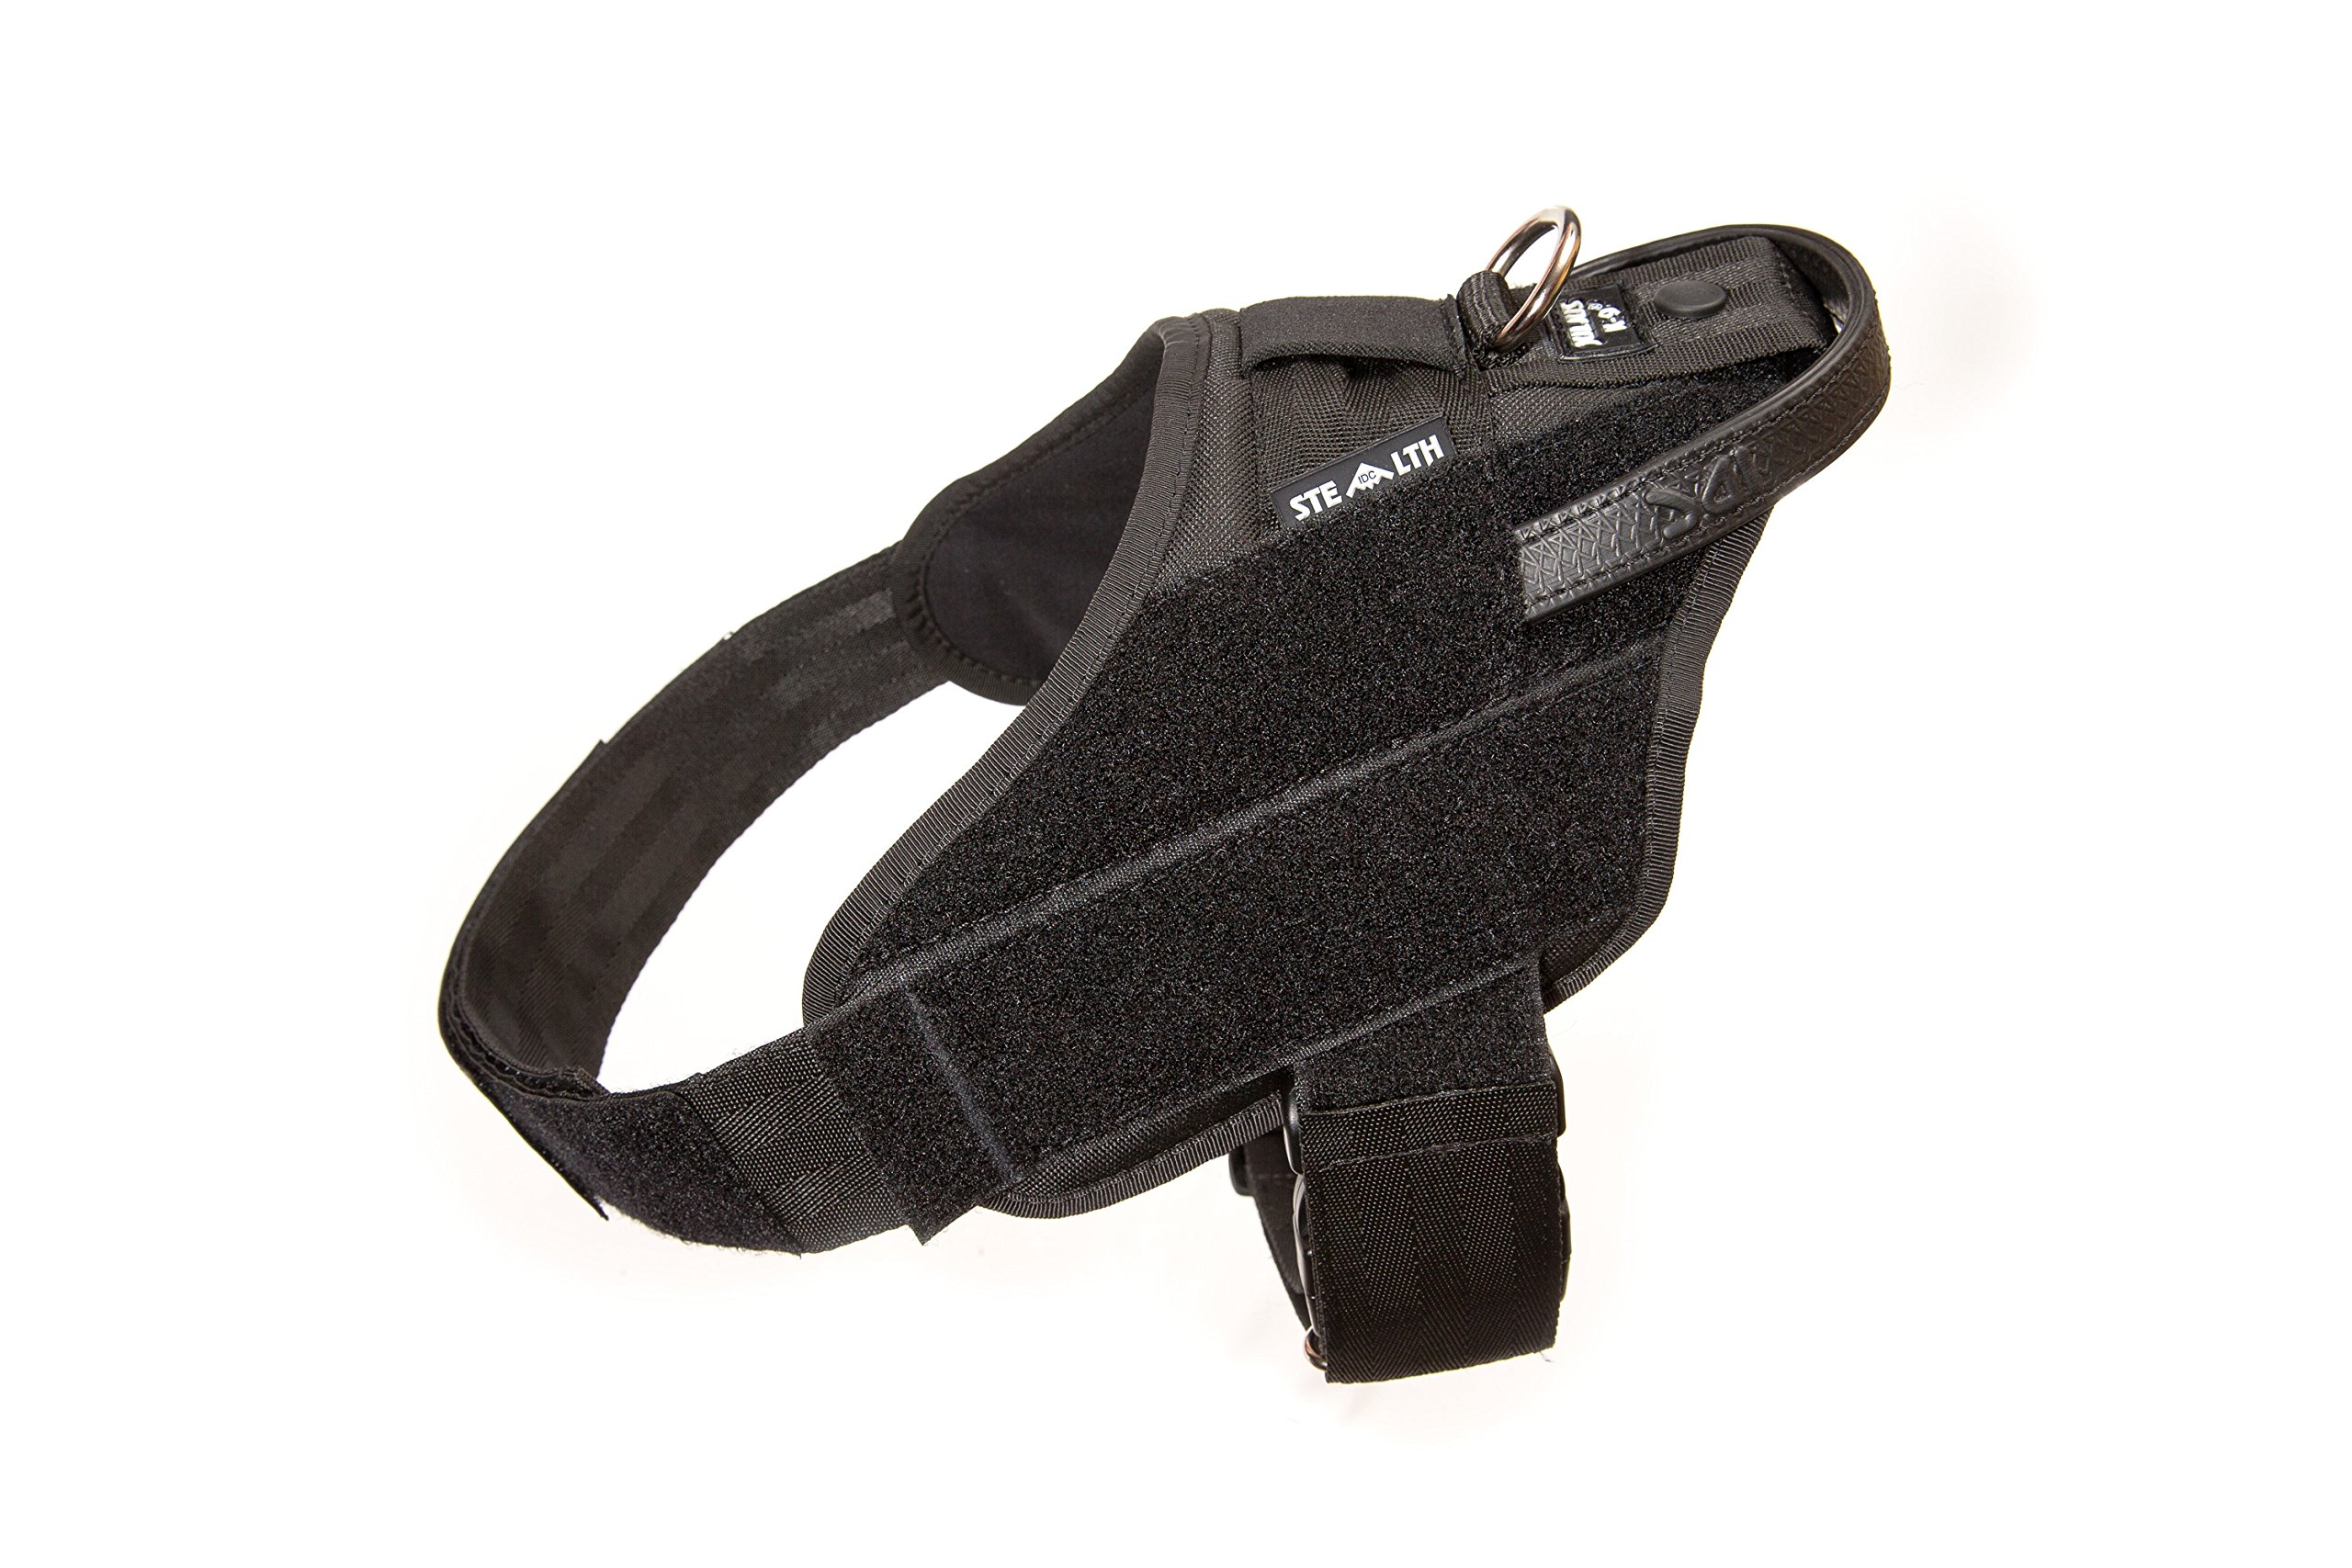 Julius-K9 IDC Stealth Power Harness, Size 1; Chest Circumference: 63-85 cm/24.8-33.5'', Black